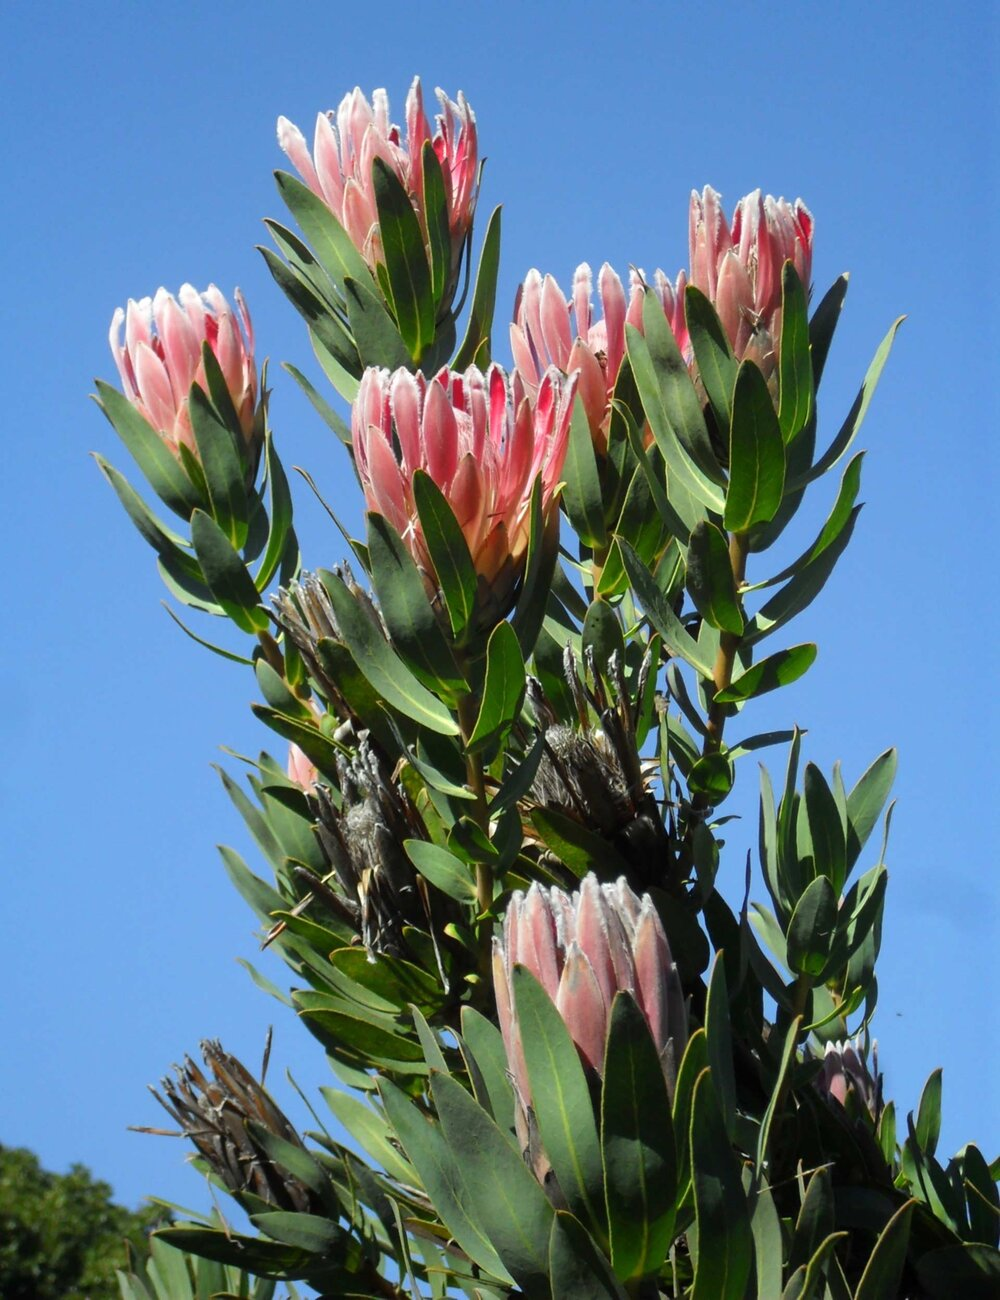 Protea sp . showing leaves, fresh inflorescences and dry inflorescences, possibly with fruits and seeds within.    Image source